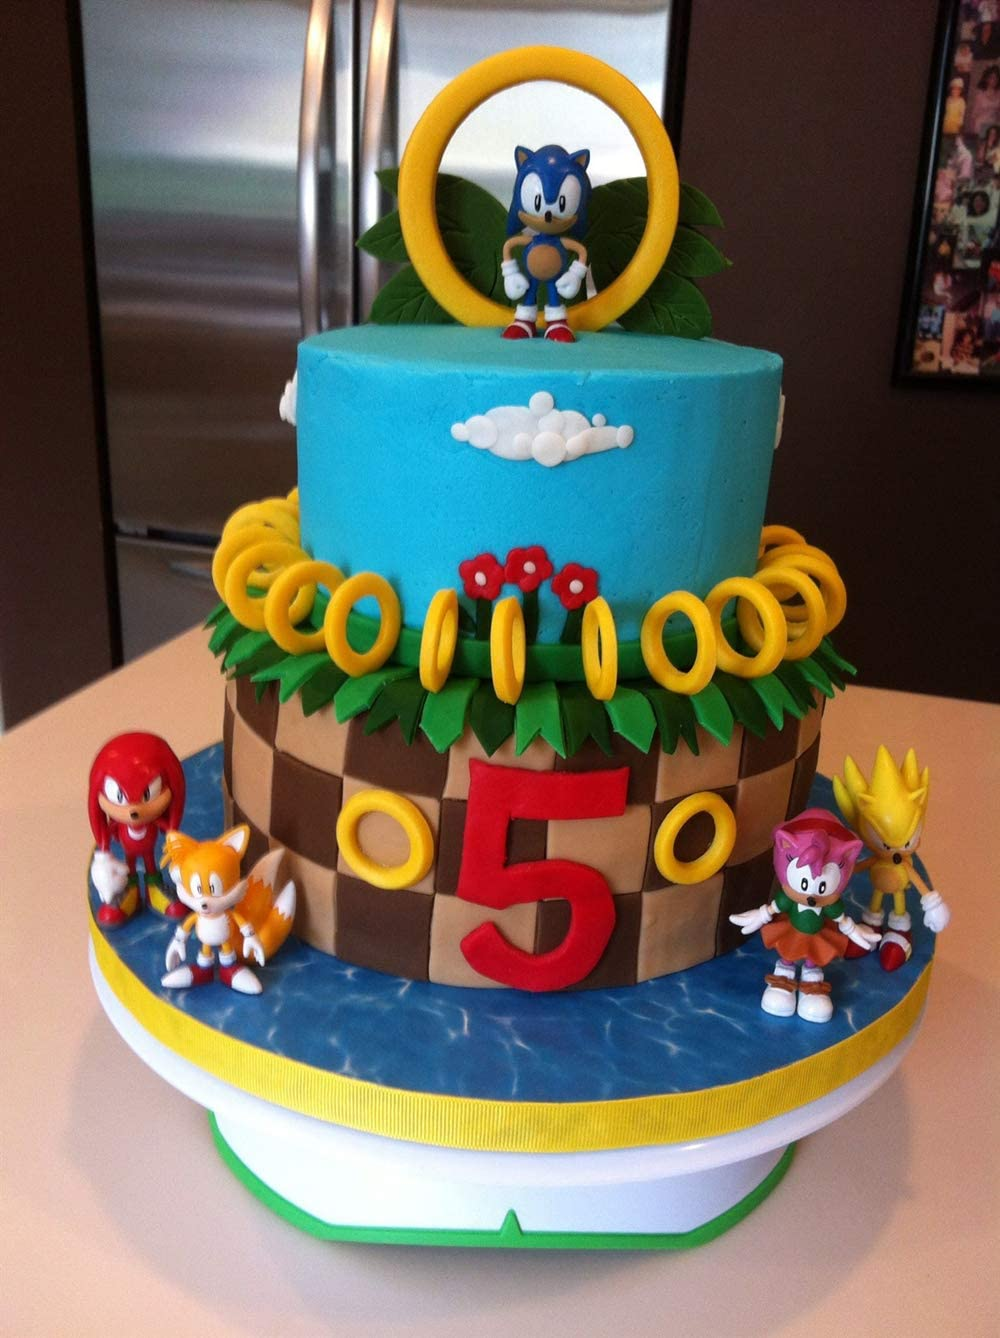 Sonic The Hedgehog Series Figures Toys Great for Play or Collecting and Cake Decoration 6pcs Kids Birthday Cake Toppers